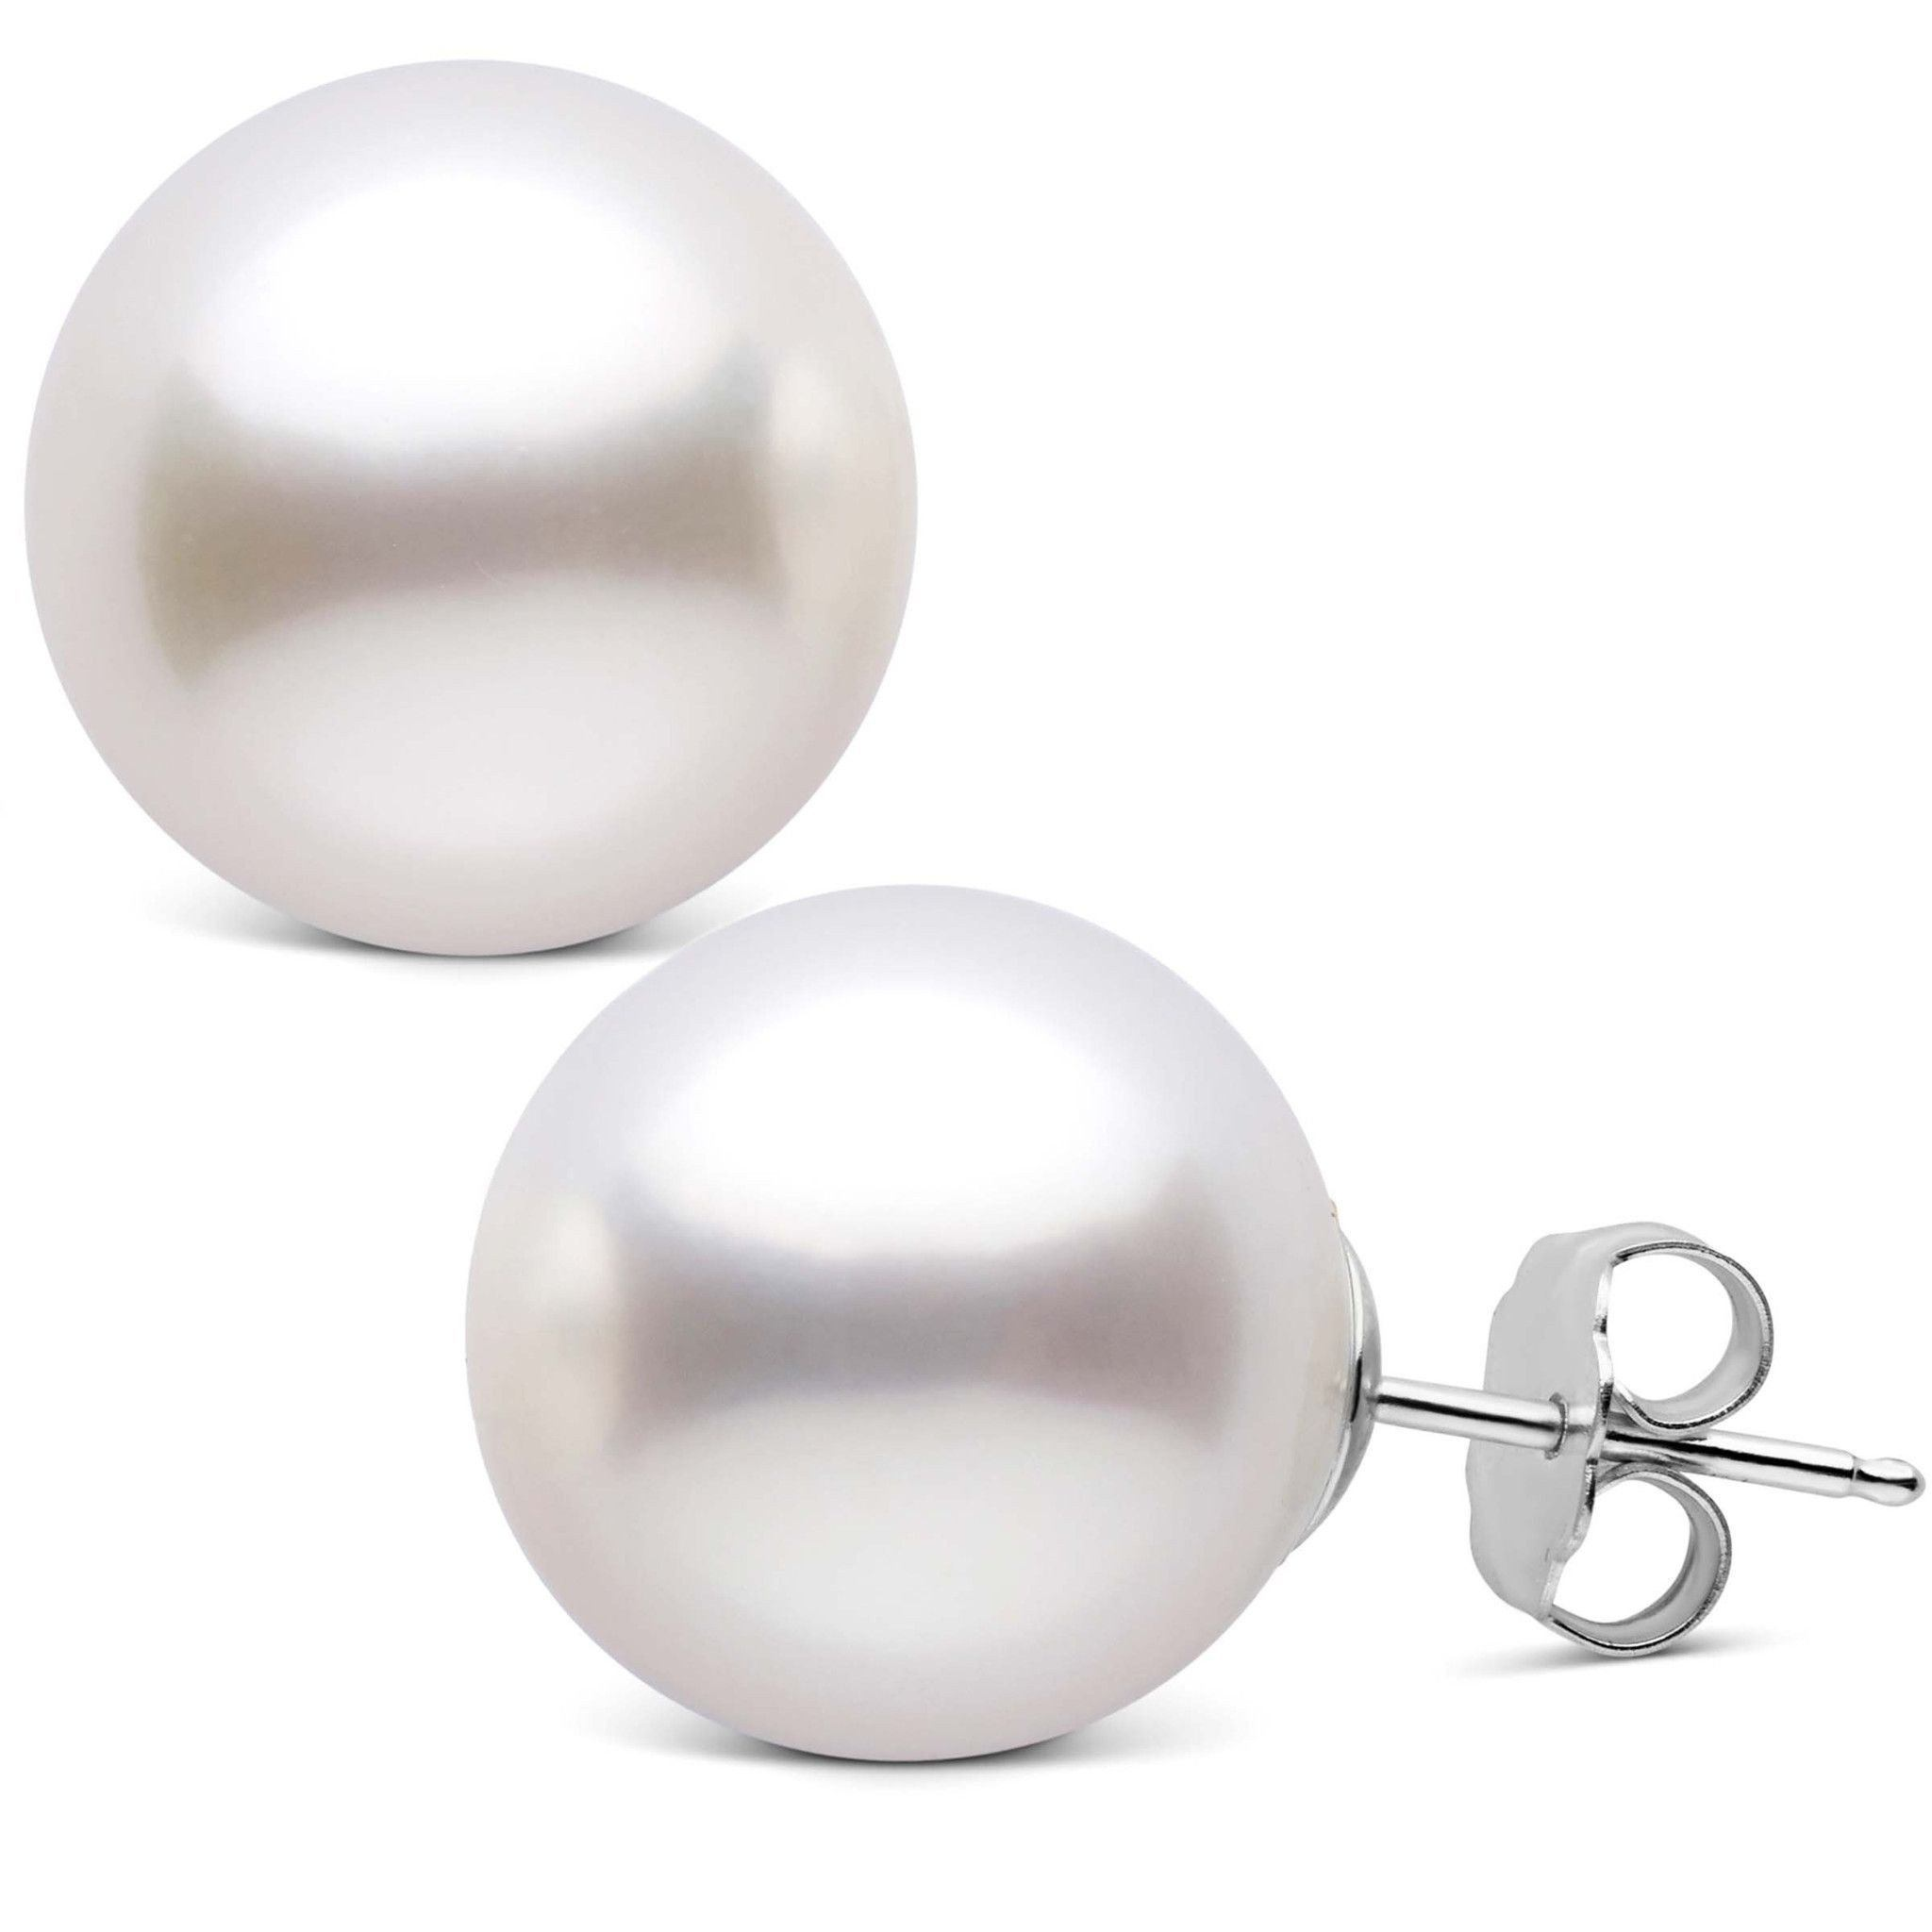 14.0-15.0 mm AAA White South Sea Pearl Stud Earrings